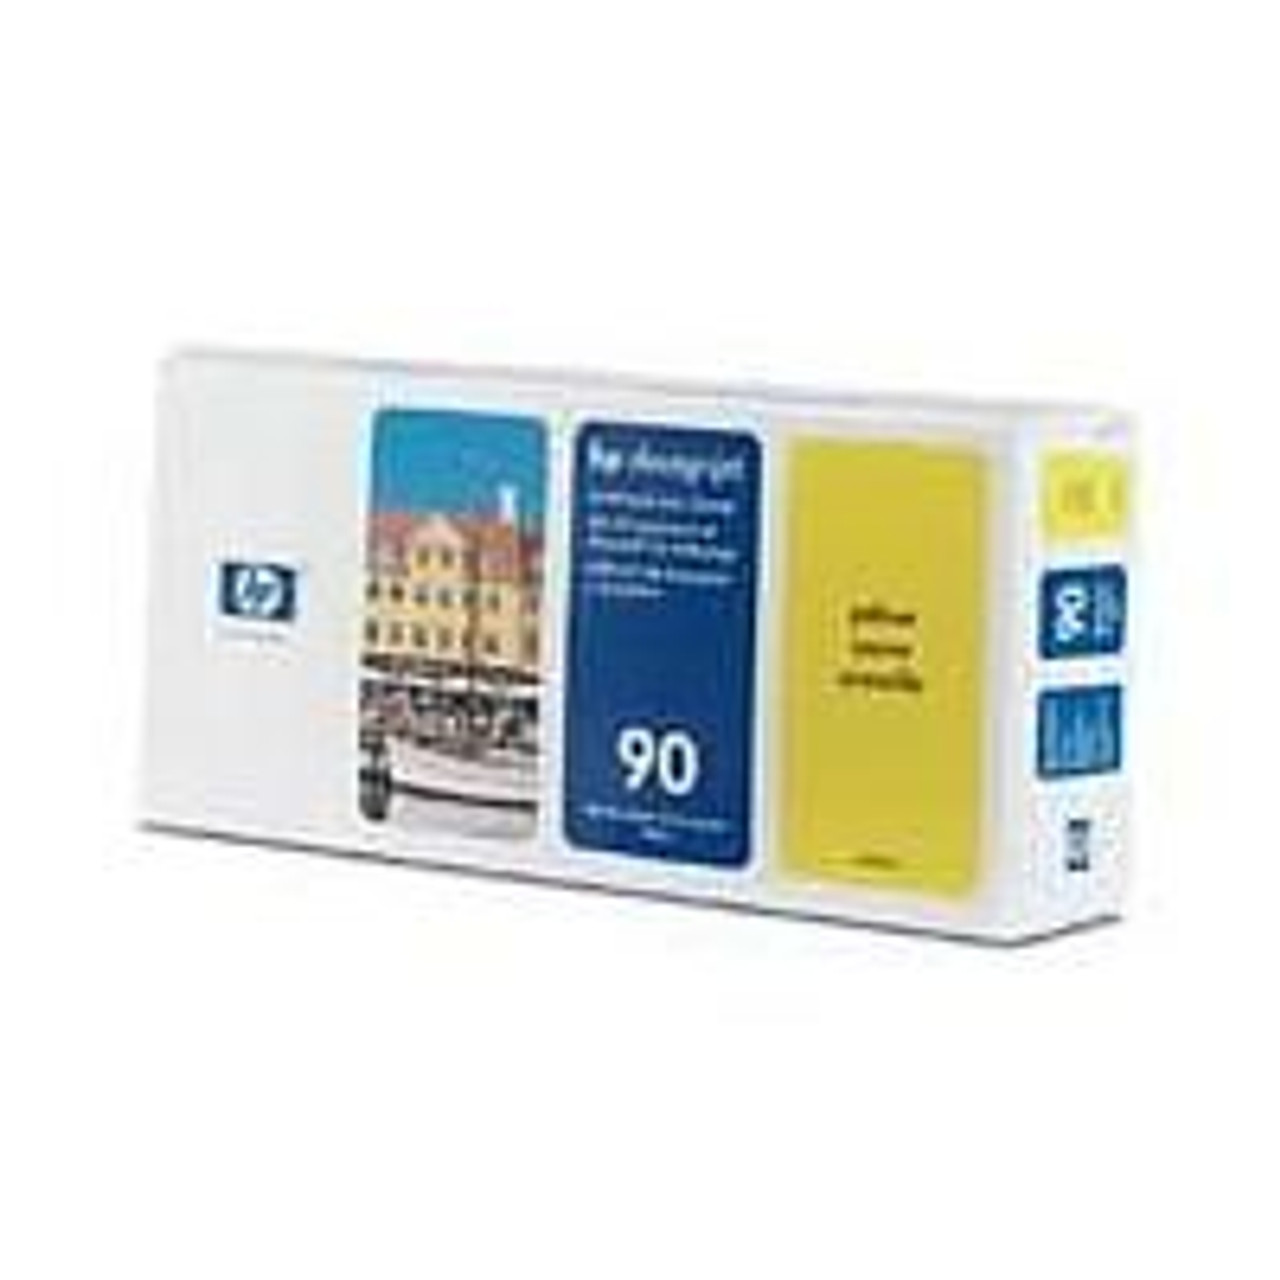 Image for HP 90 Yellow Printhead and Cleaner (C5057A) CX Computer Superstore